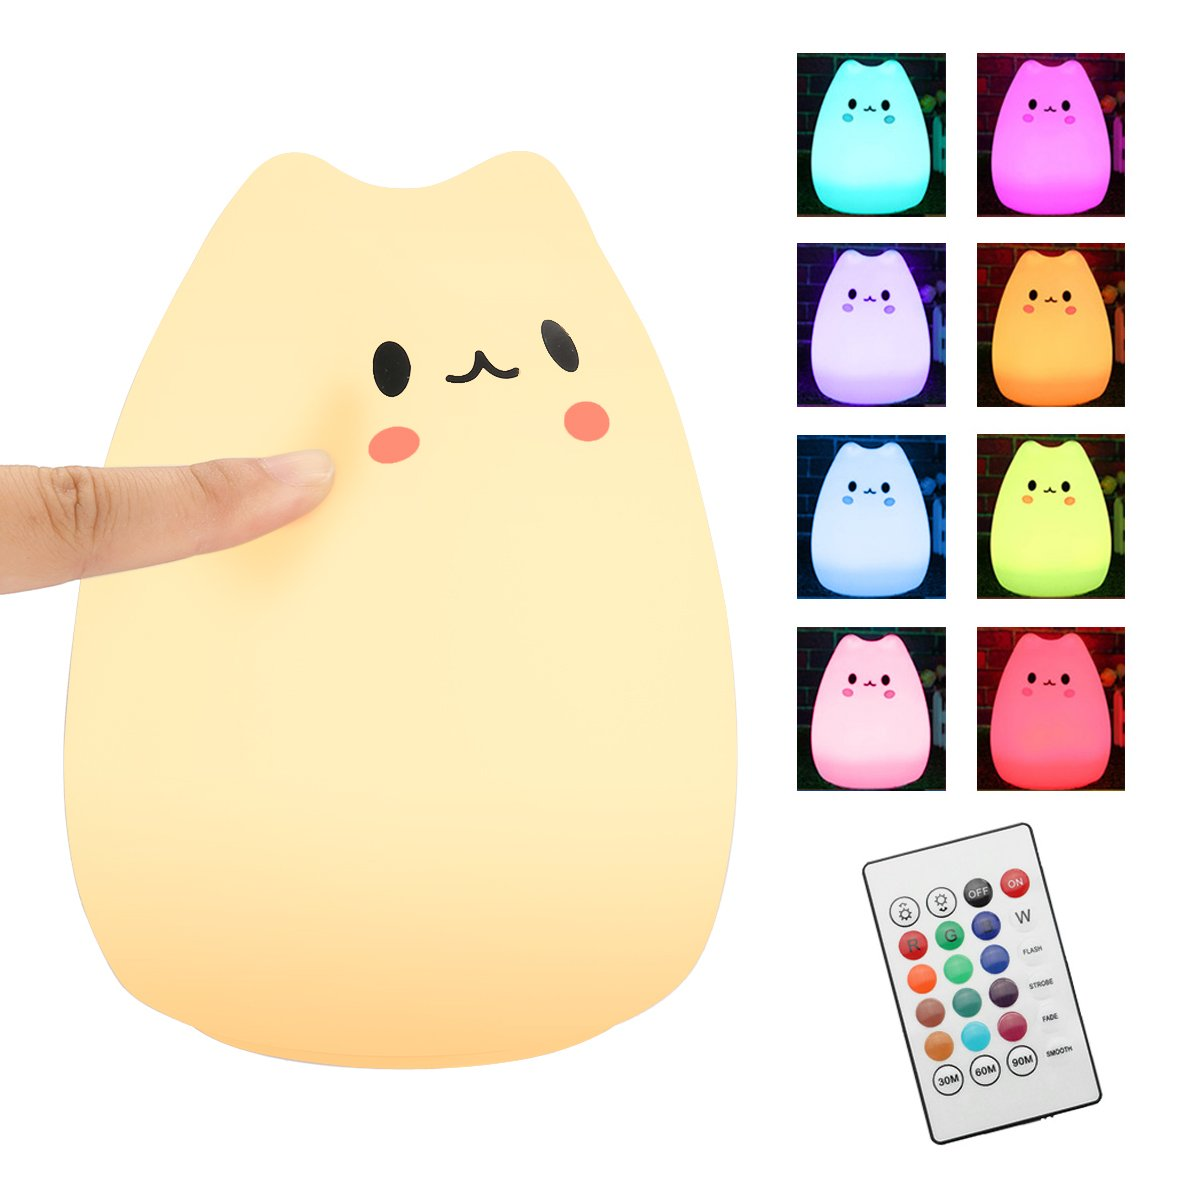 Children Night Light,Elfeland LED Cute Silicone Cat Lamp Kids Bedside Lights,Warm White/12+1 Colors/6 Lighting Modes/USB Rechargable,Sensitive Tap Control for Baby Bedroom Nursery Birthday Gift(with Remote)